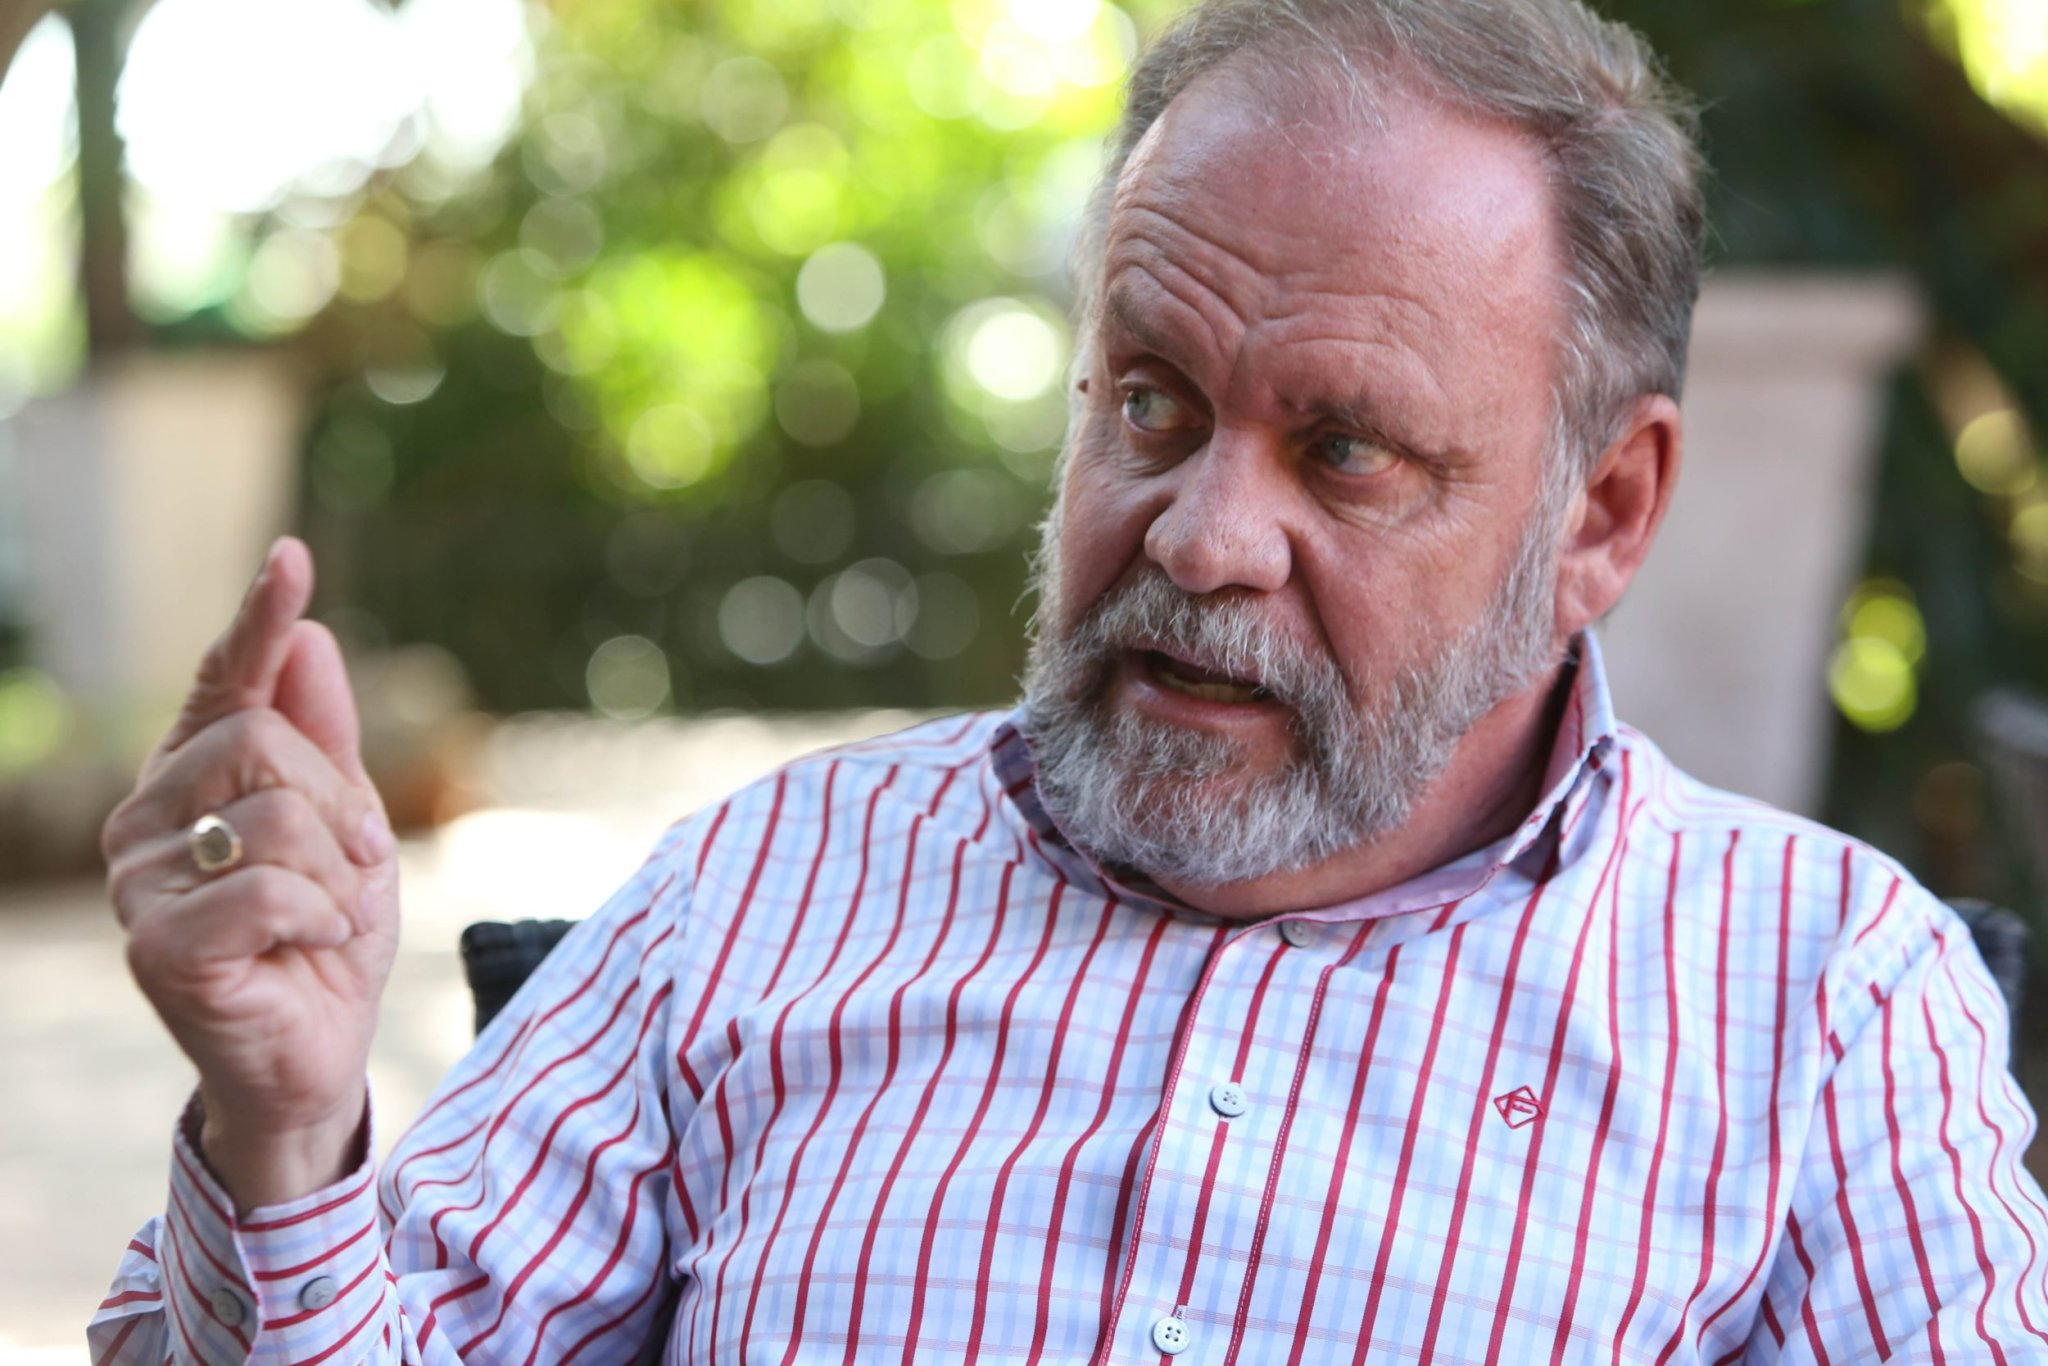 ANC's blunder could let Carl Niehaus off the hook – expert